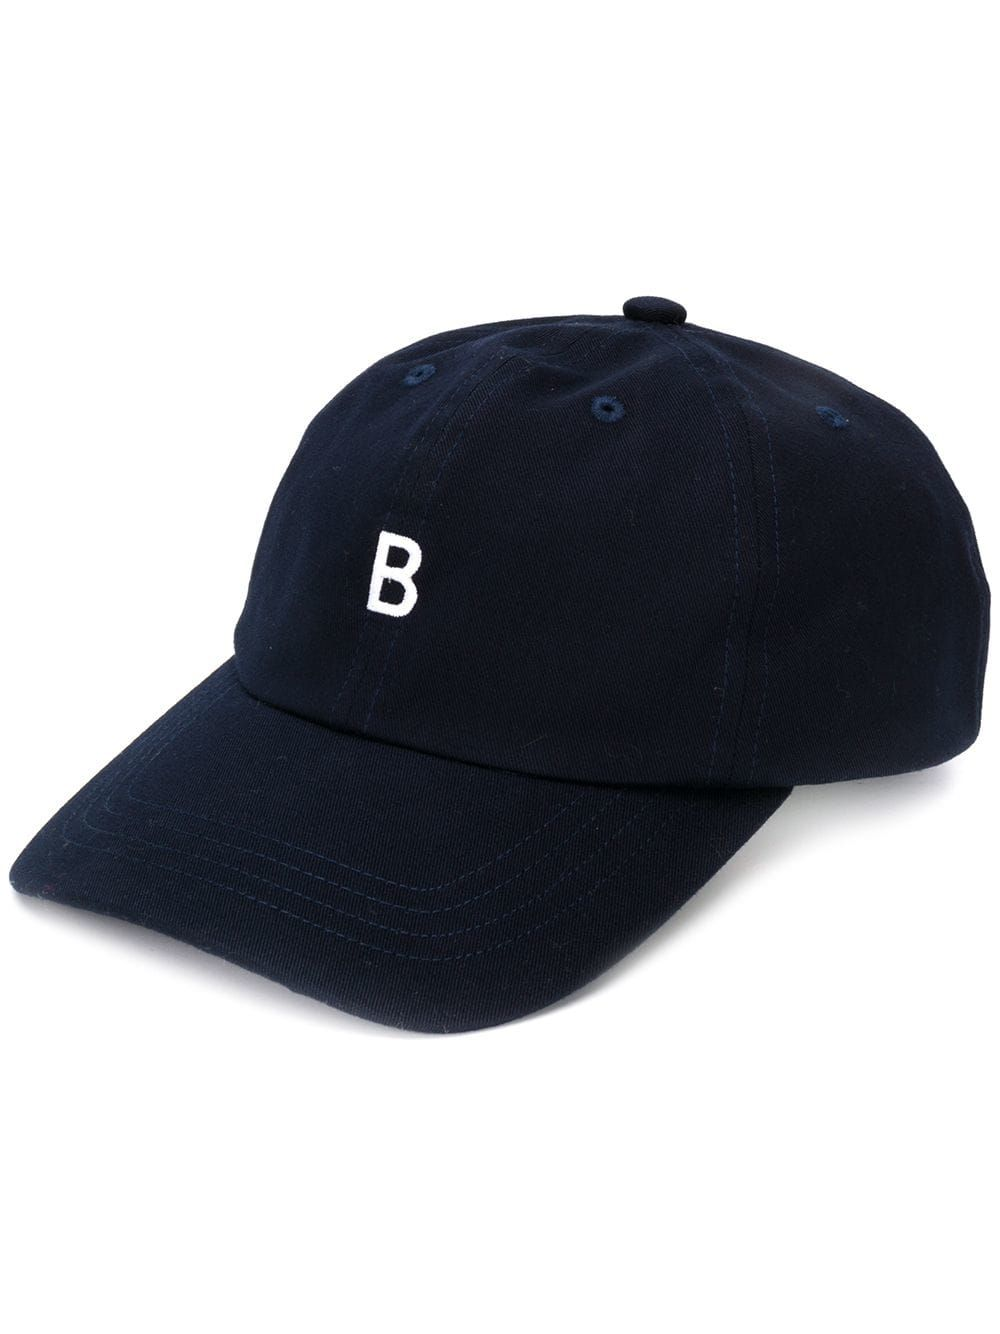 8deedb5f4 BAND OF OUTSIDERS BAND OF OUTSIDERS EMBROIDERED ADJUSTABLE CAP ...